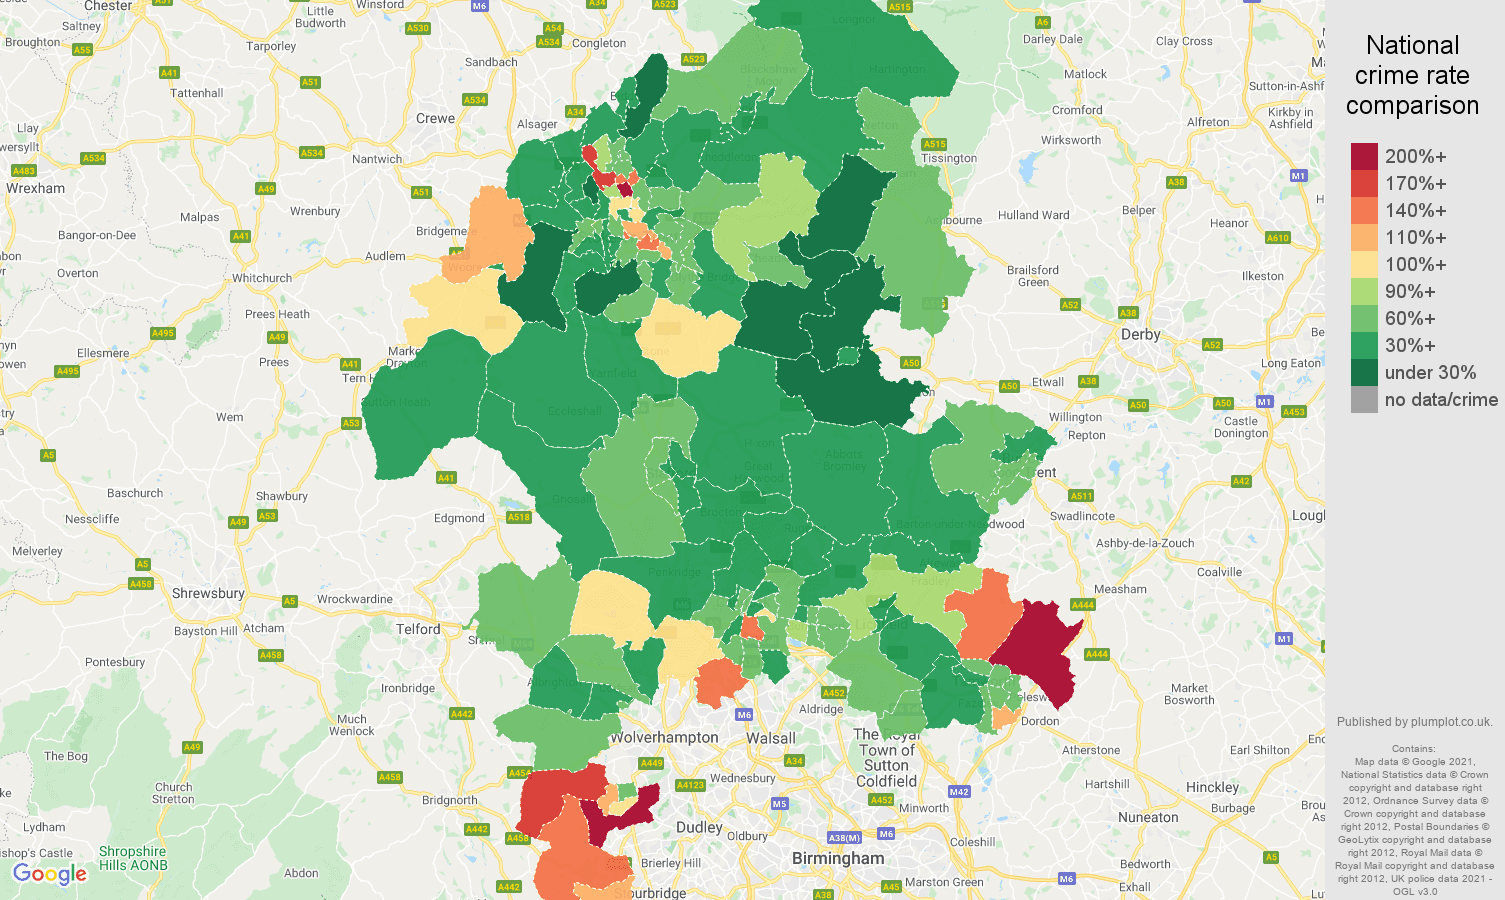 Staffordshire burglary crime rate comparison map